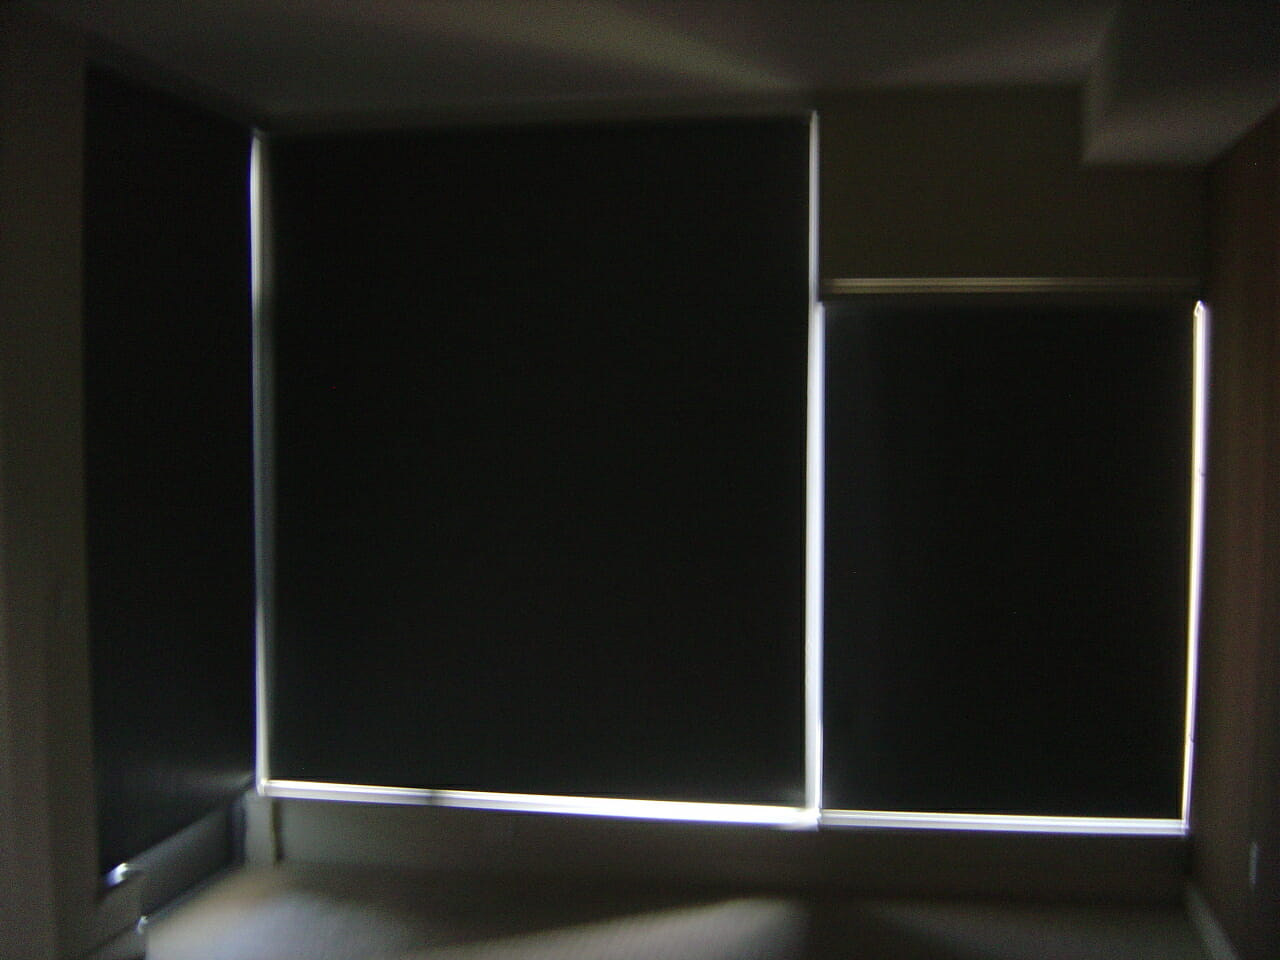 Blackout Curtains Amp Shades 3 Blind Mice Window Coverings